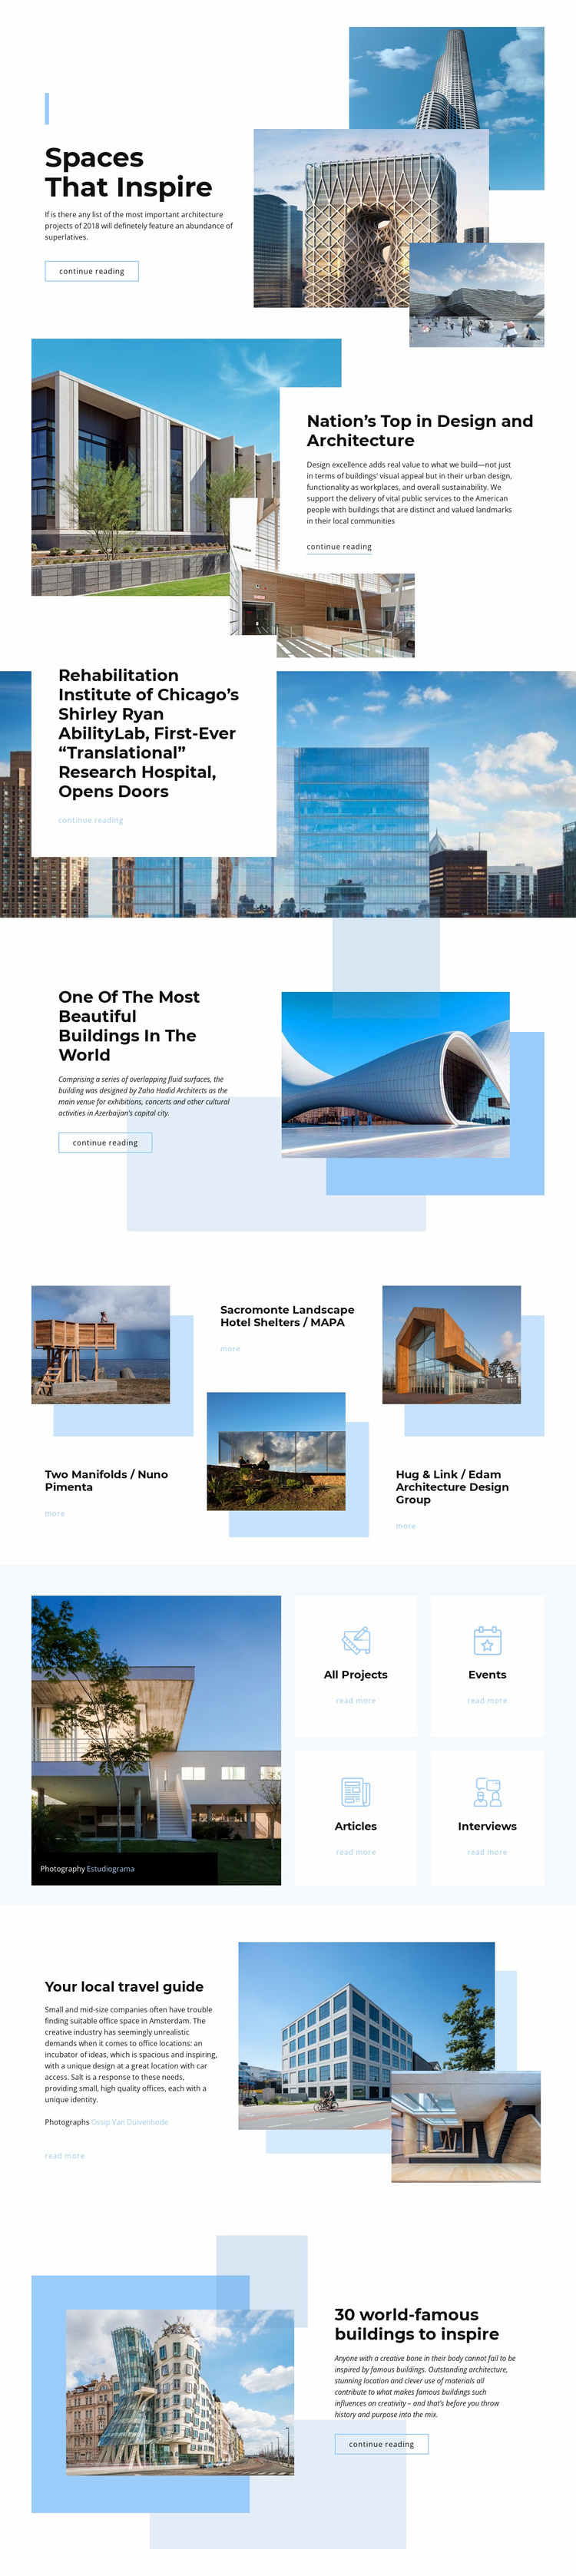 Spaces That Inspire Website Template